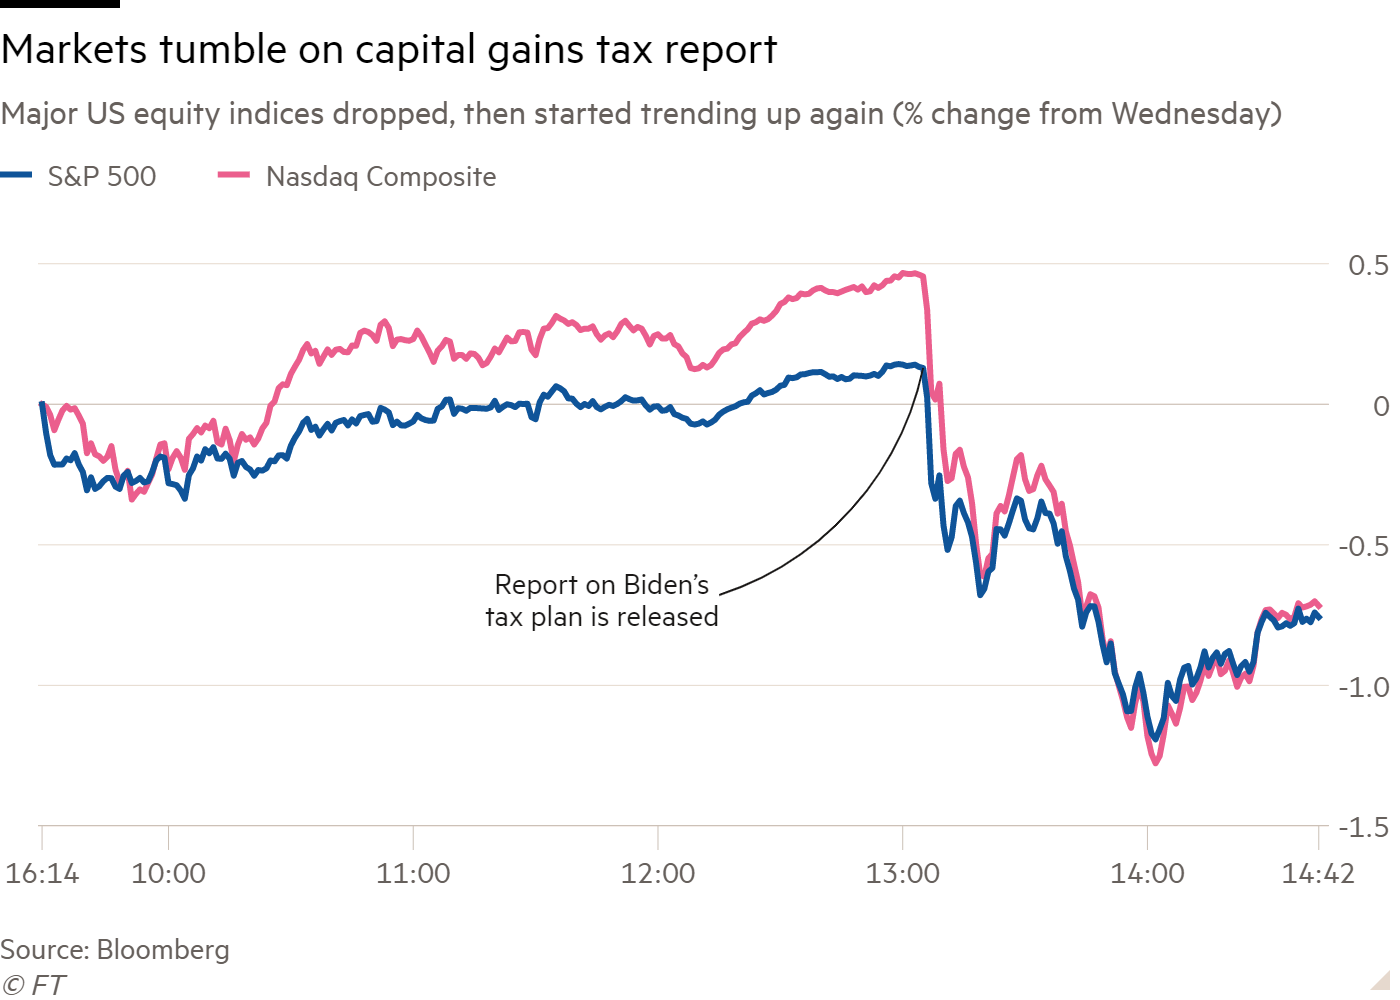 Line chart of Major US equity indices dropped, then started trending up again showing Markets tumble on capital gains tax report